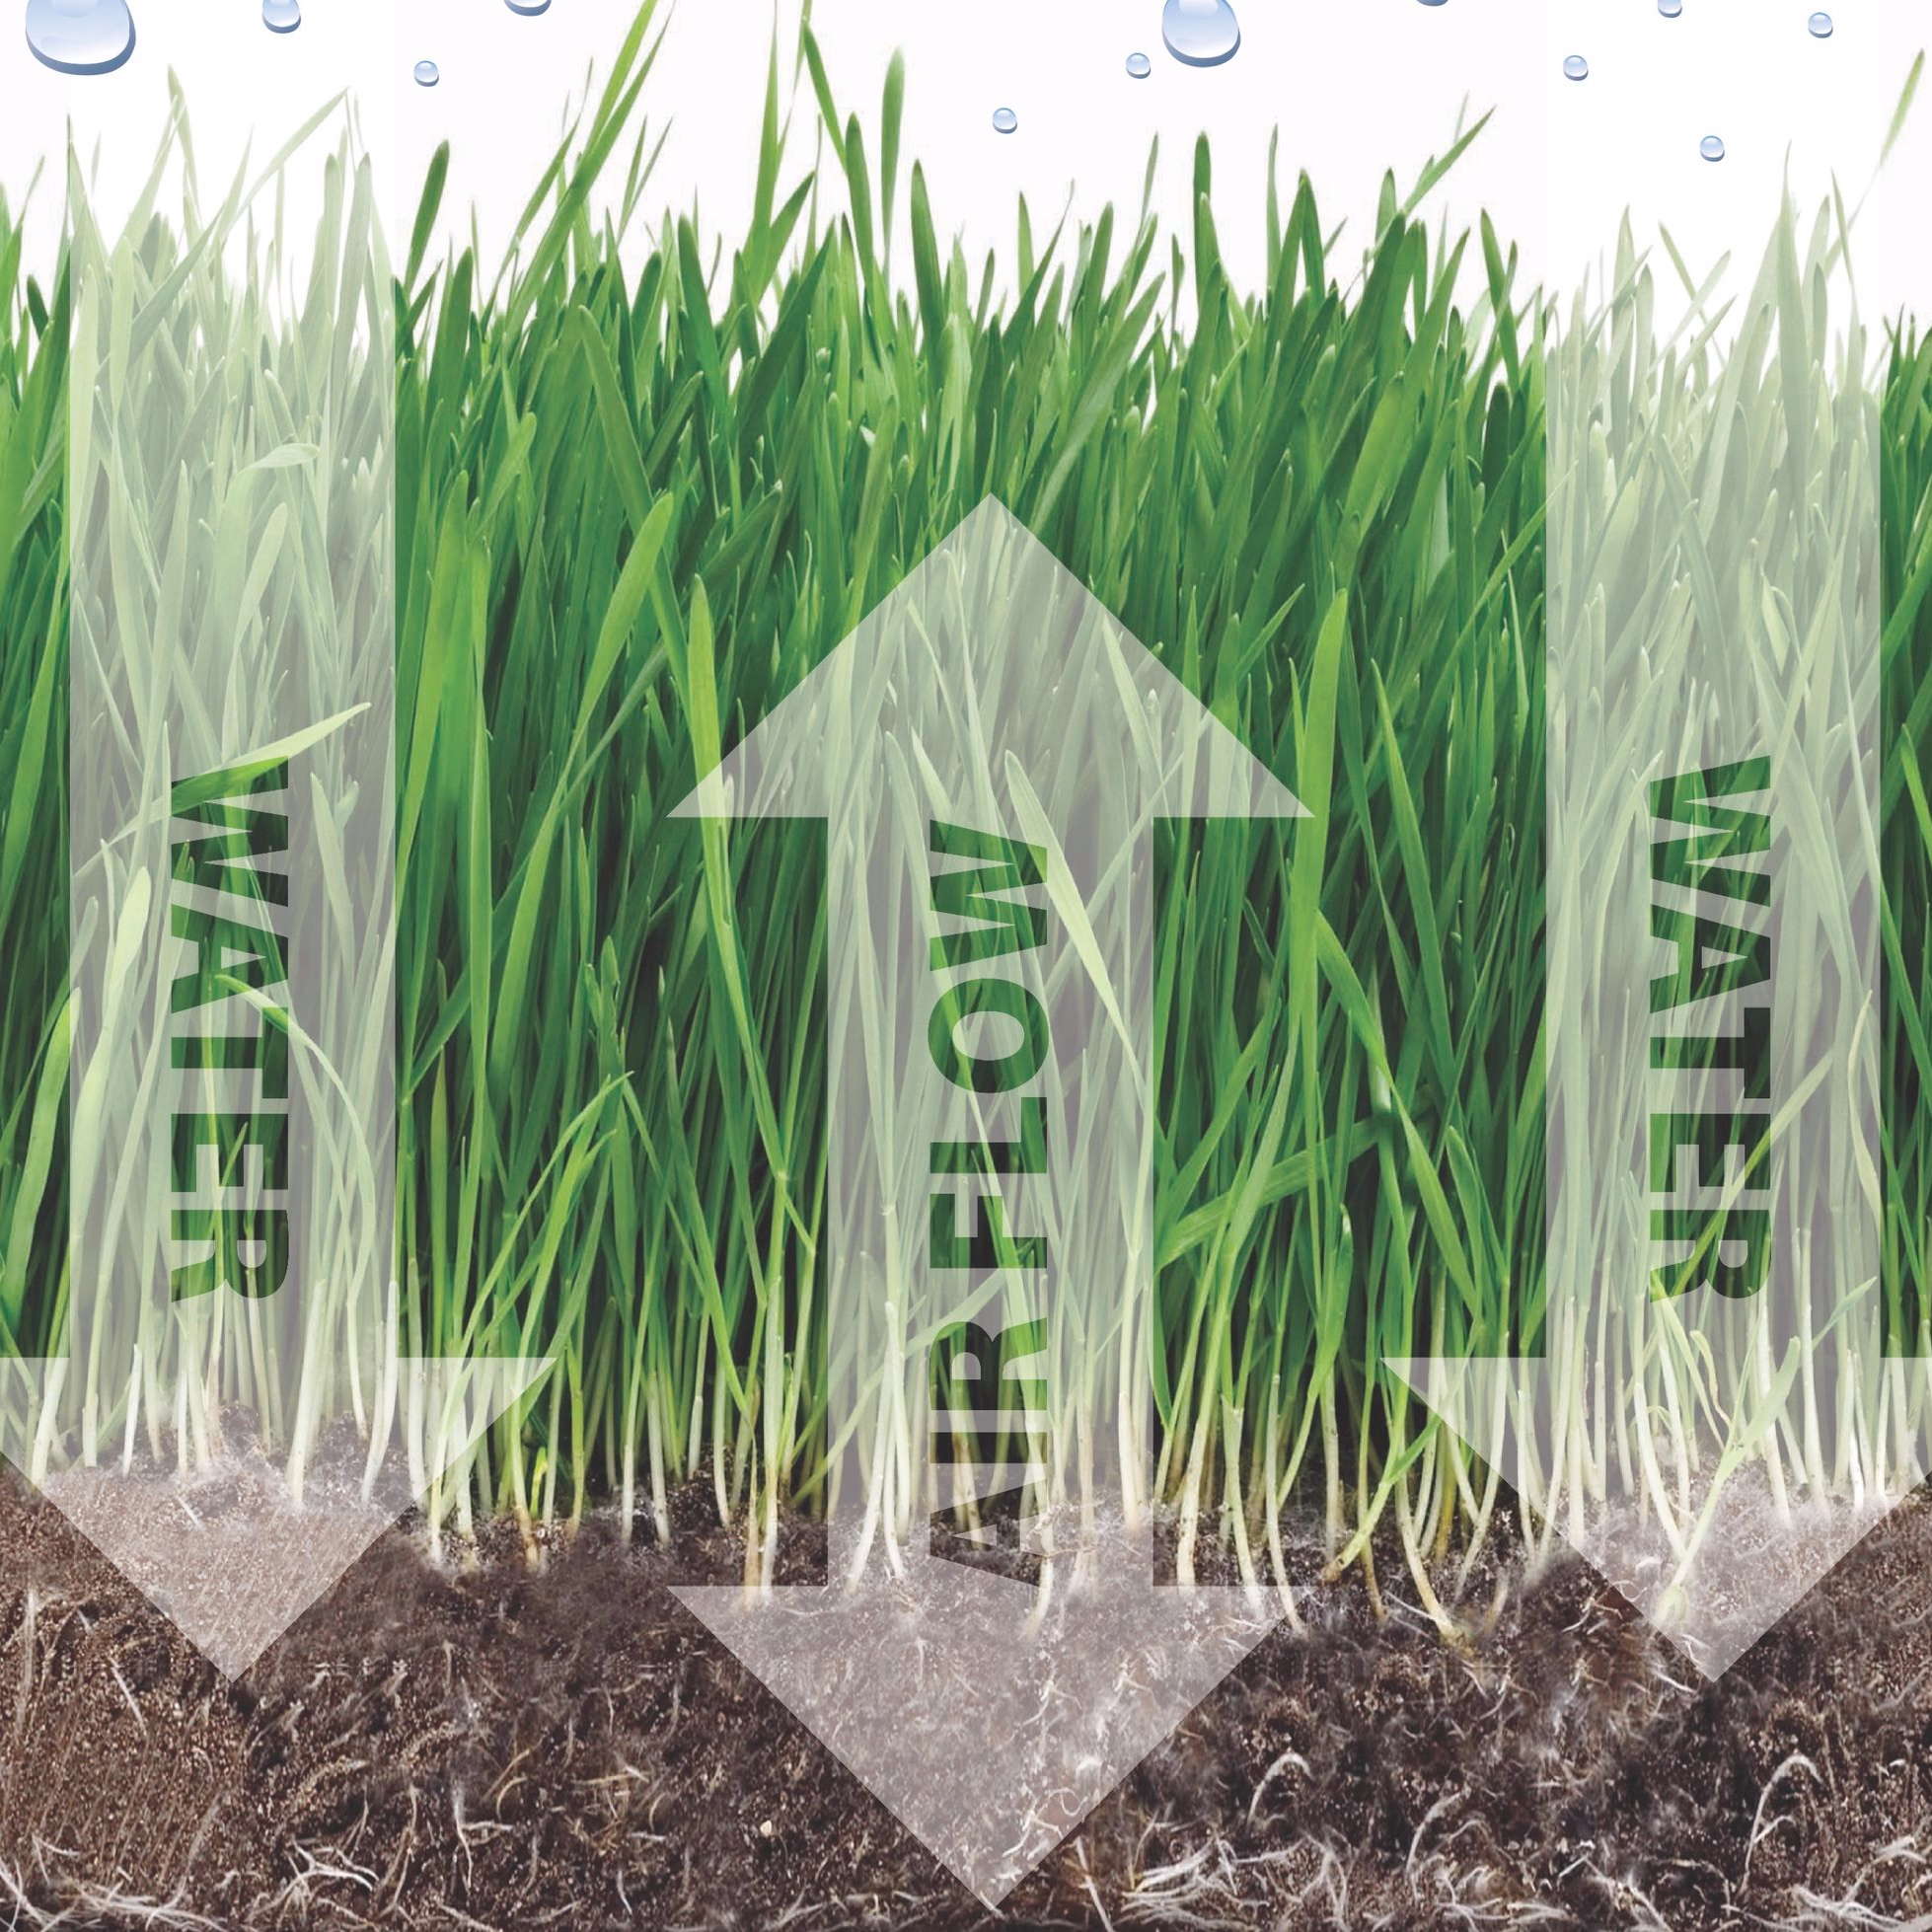 Aerate to liberate. - If you live in the south or southwest, increase absorption and percolation by treating your soil with exiGrow to liberate the hardened mineral salts. If you have more acidic soil, consider traditional core aeration.